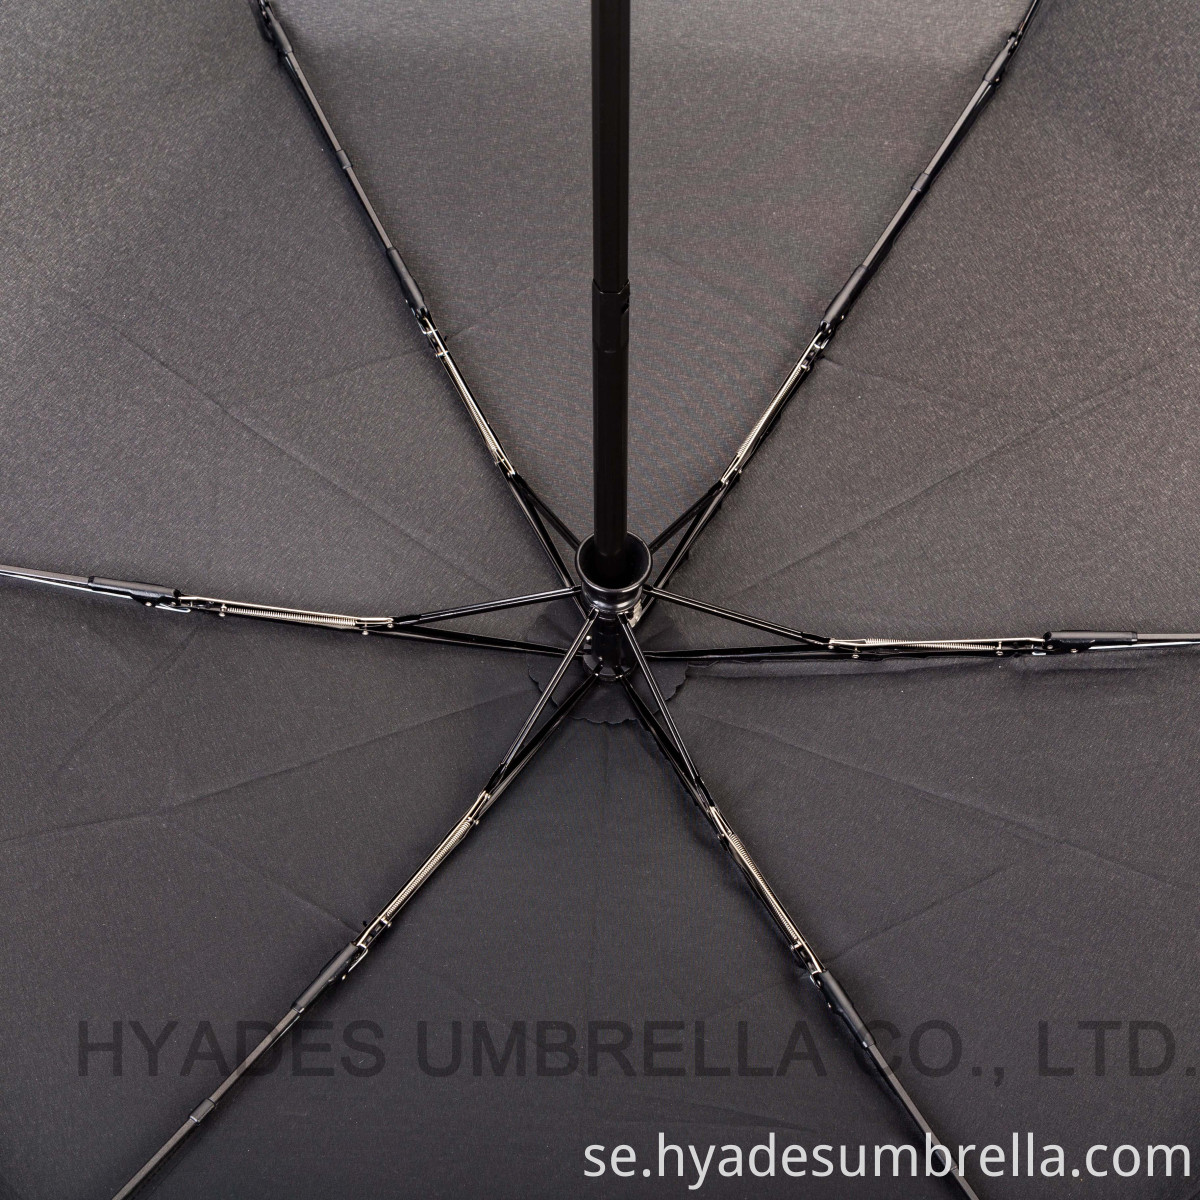 quality fiberglass ribs for auto open and close umbrella